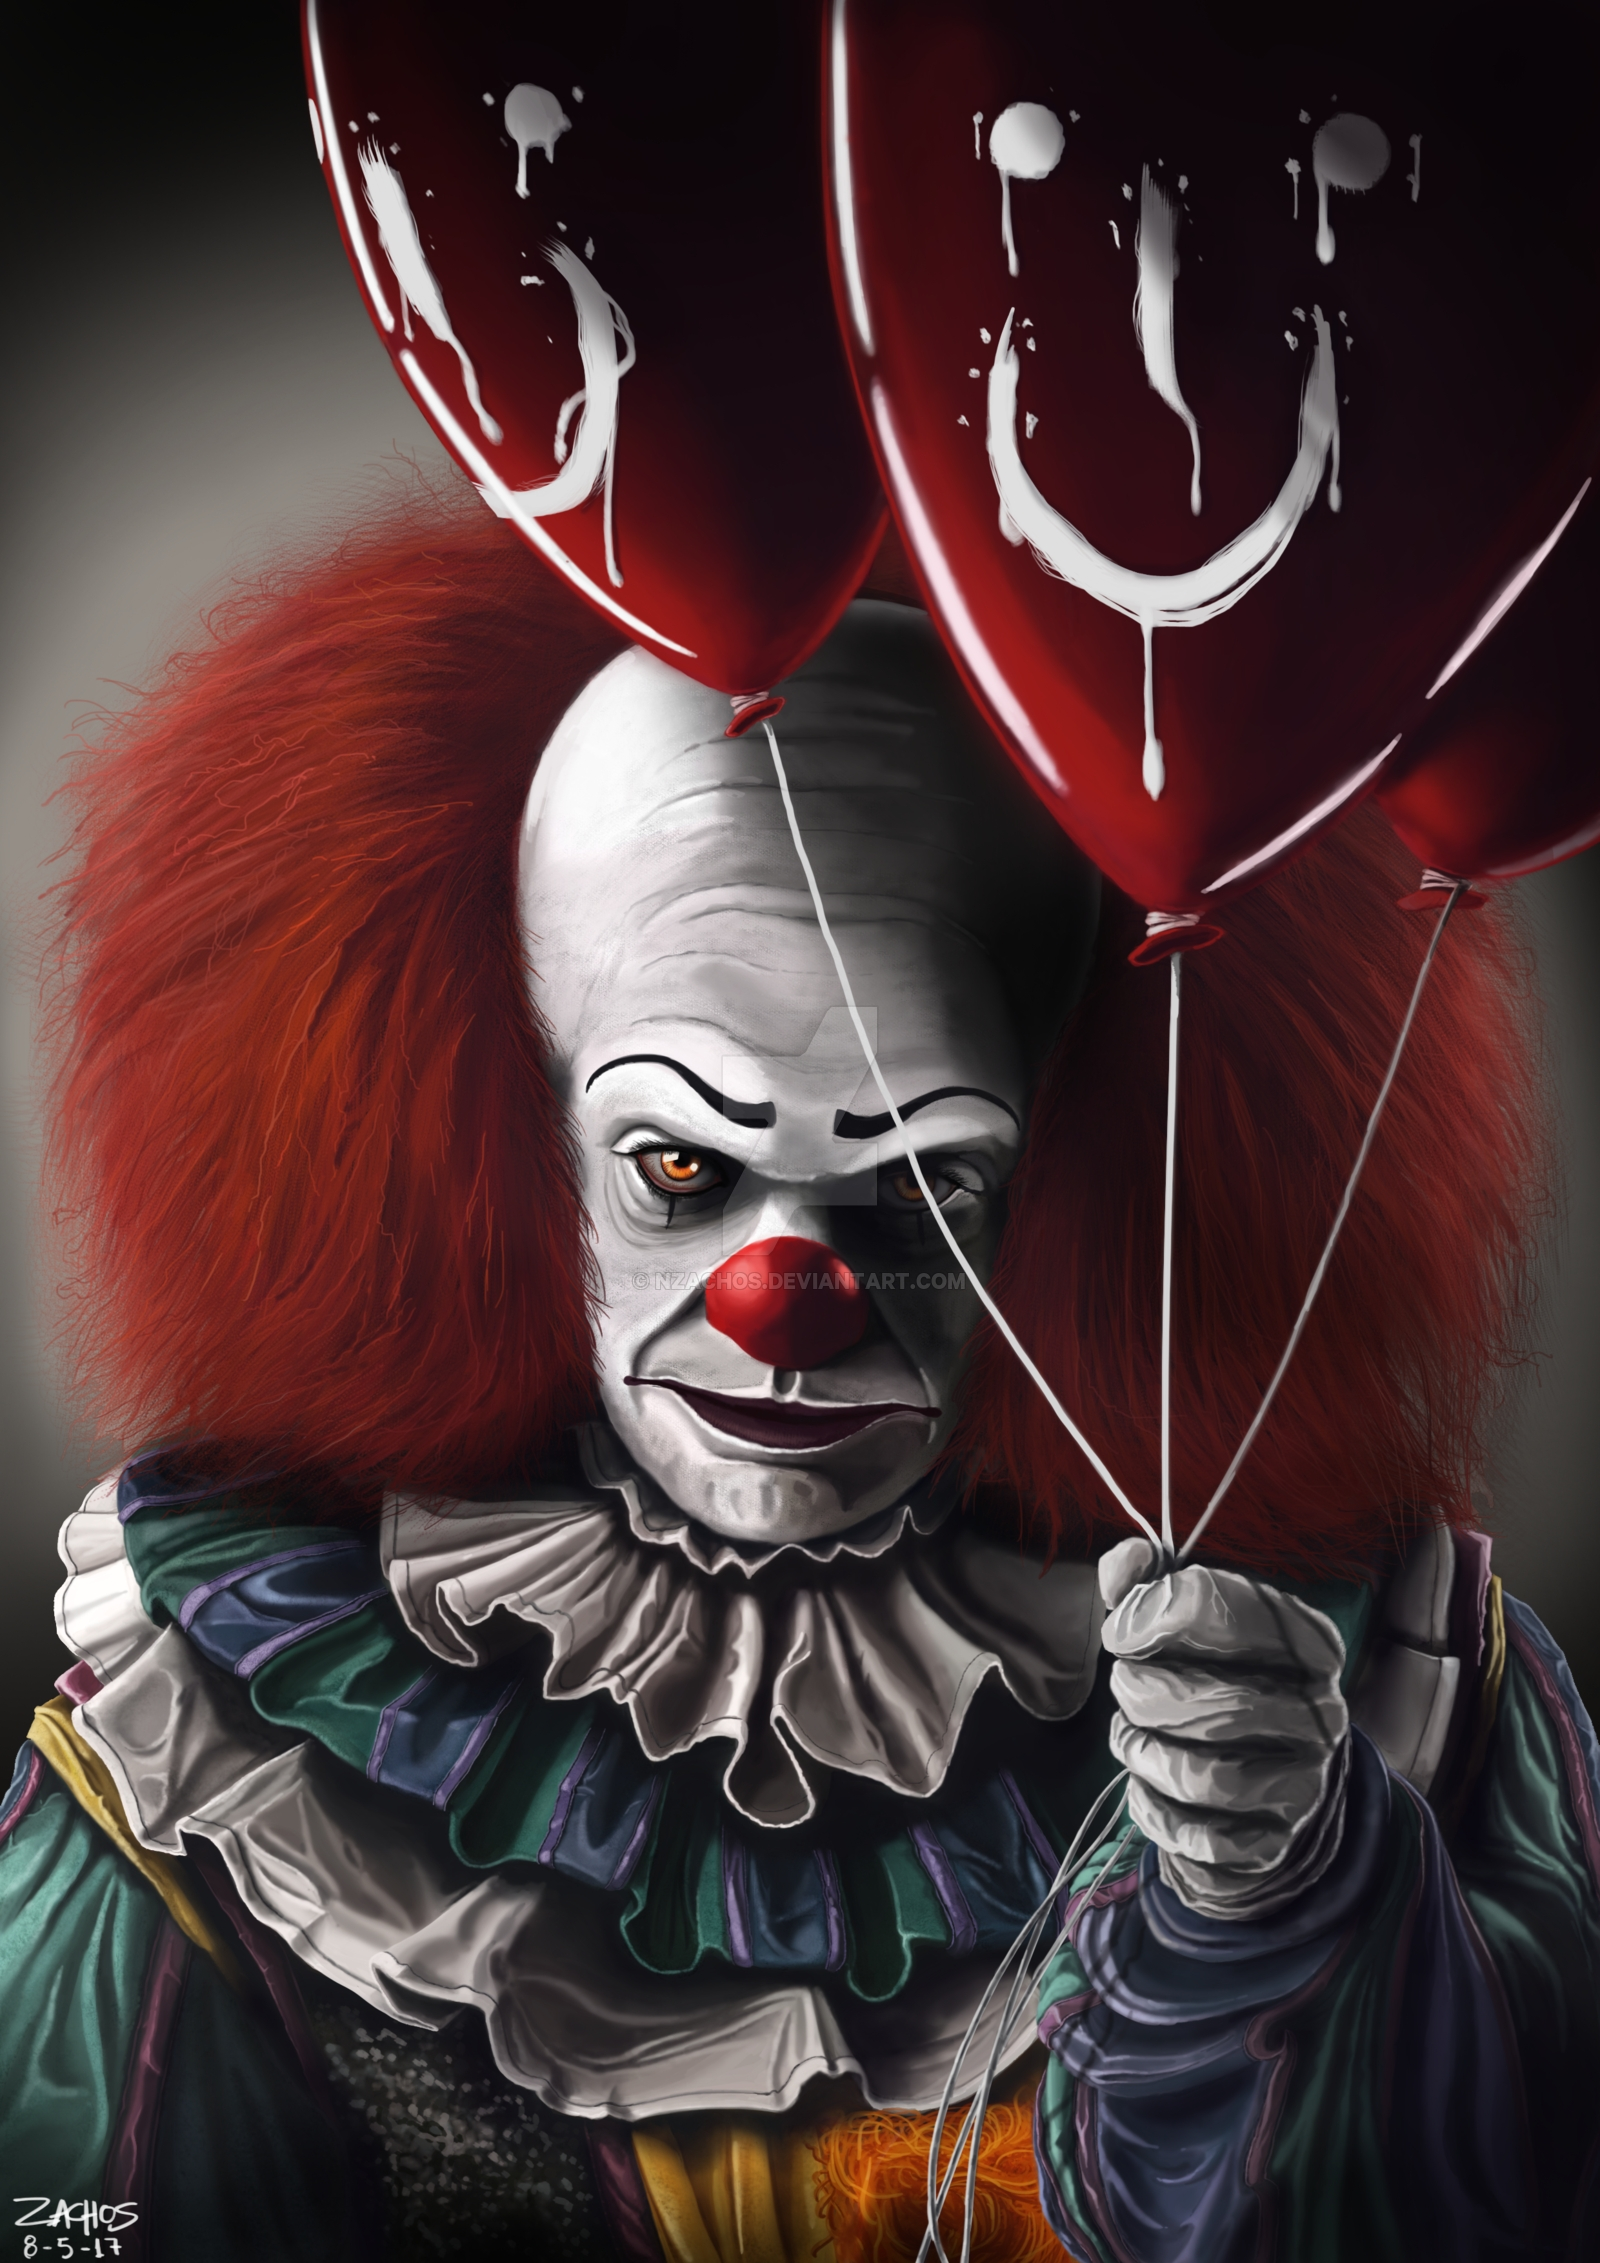 Title Pennywise The Dancing Clown Wallpapers Wallpaper Cave Dimension 1600 X 2263 File Type JPG JPEG